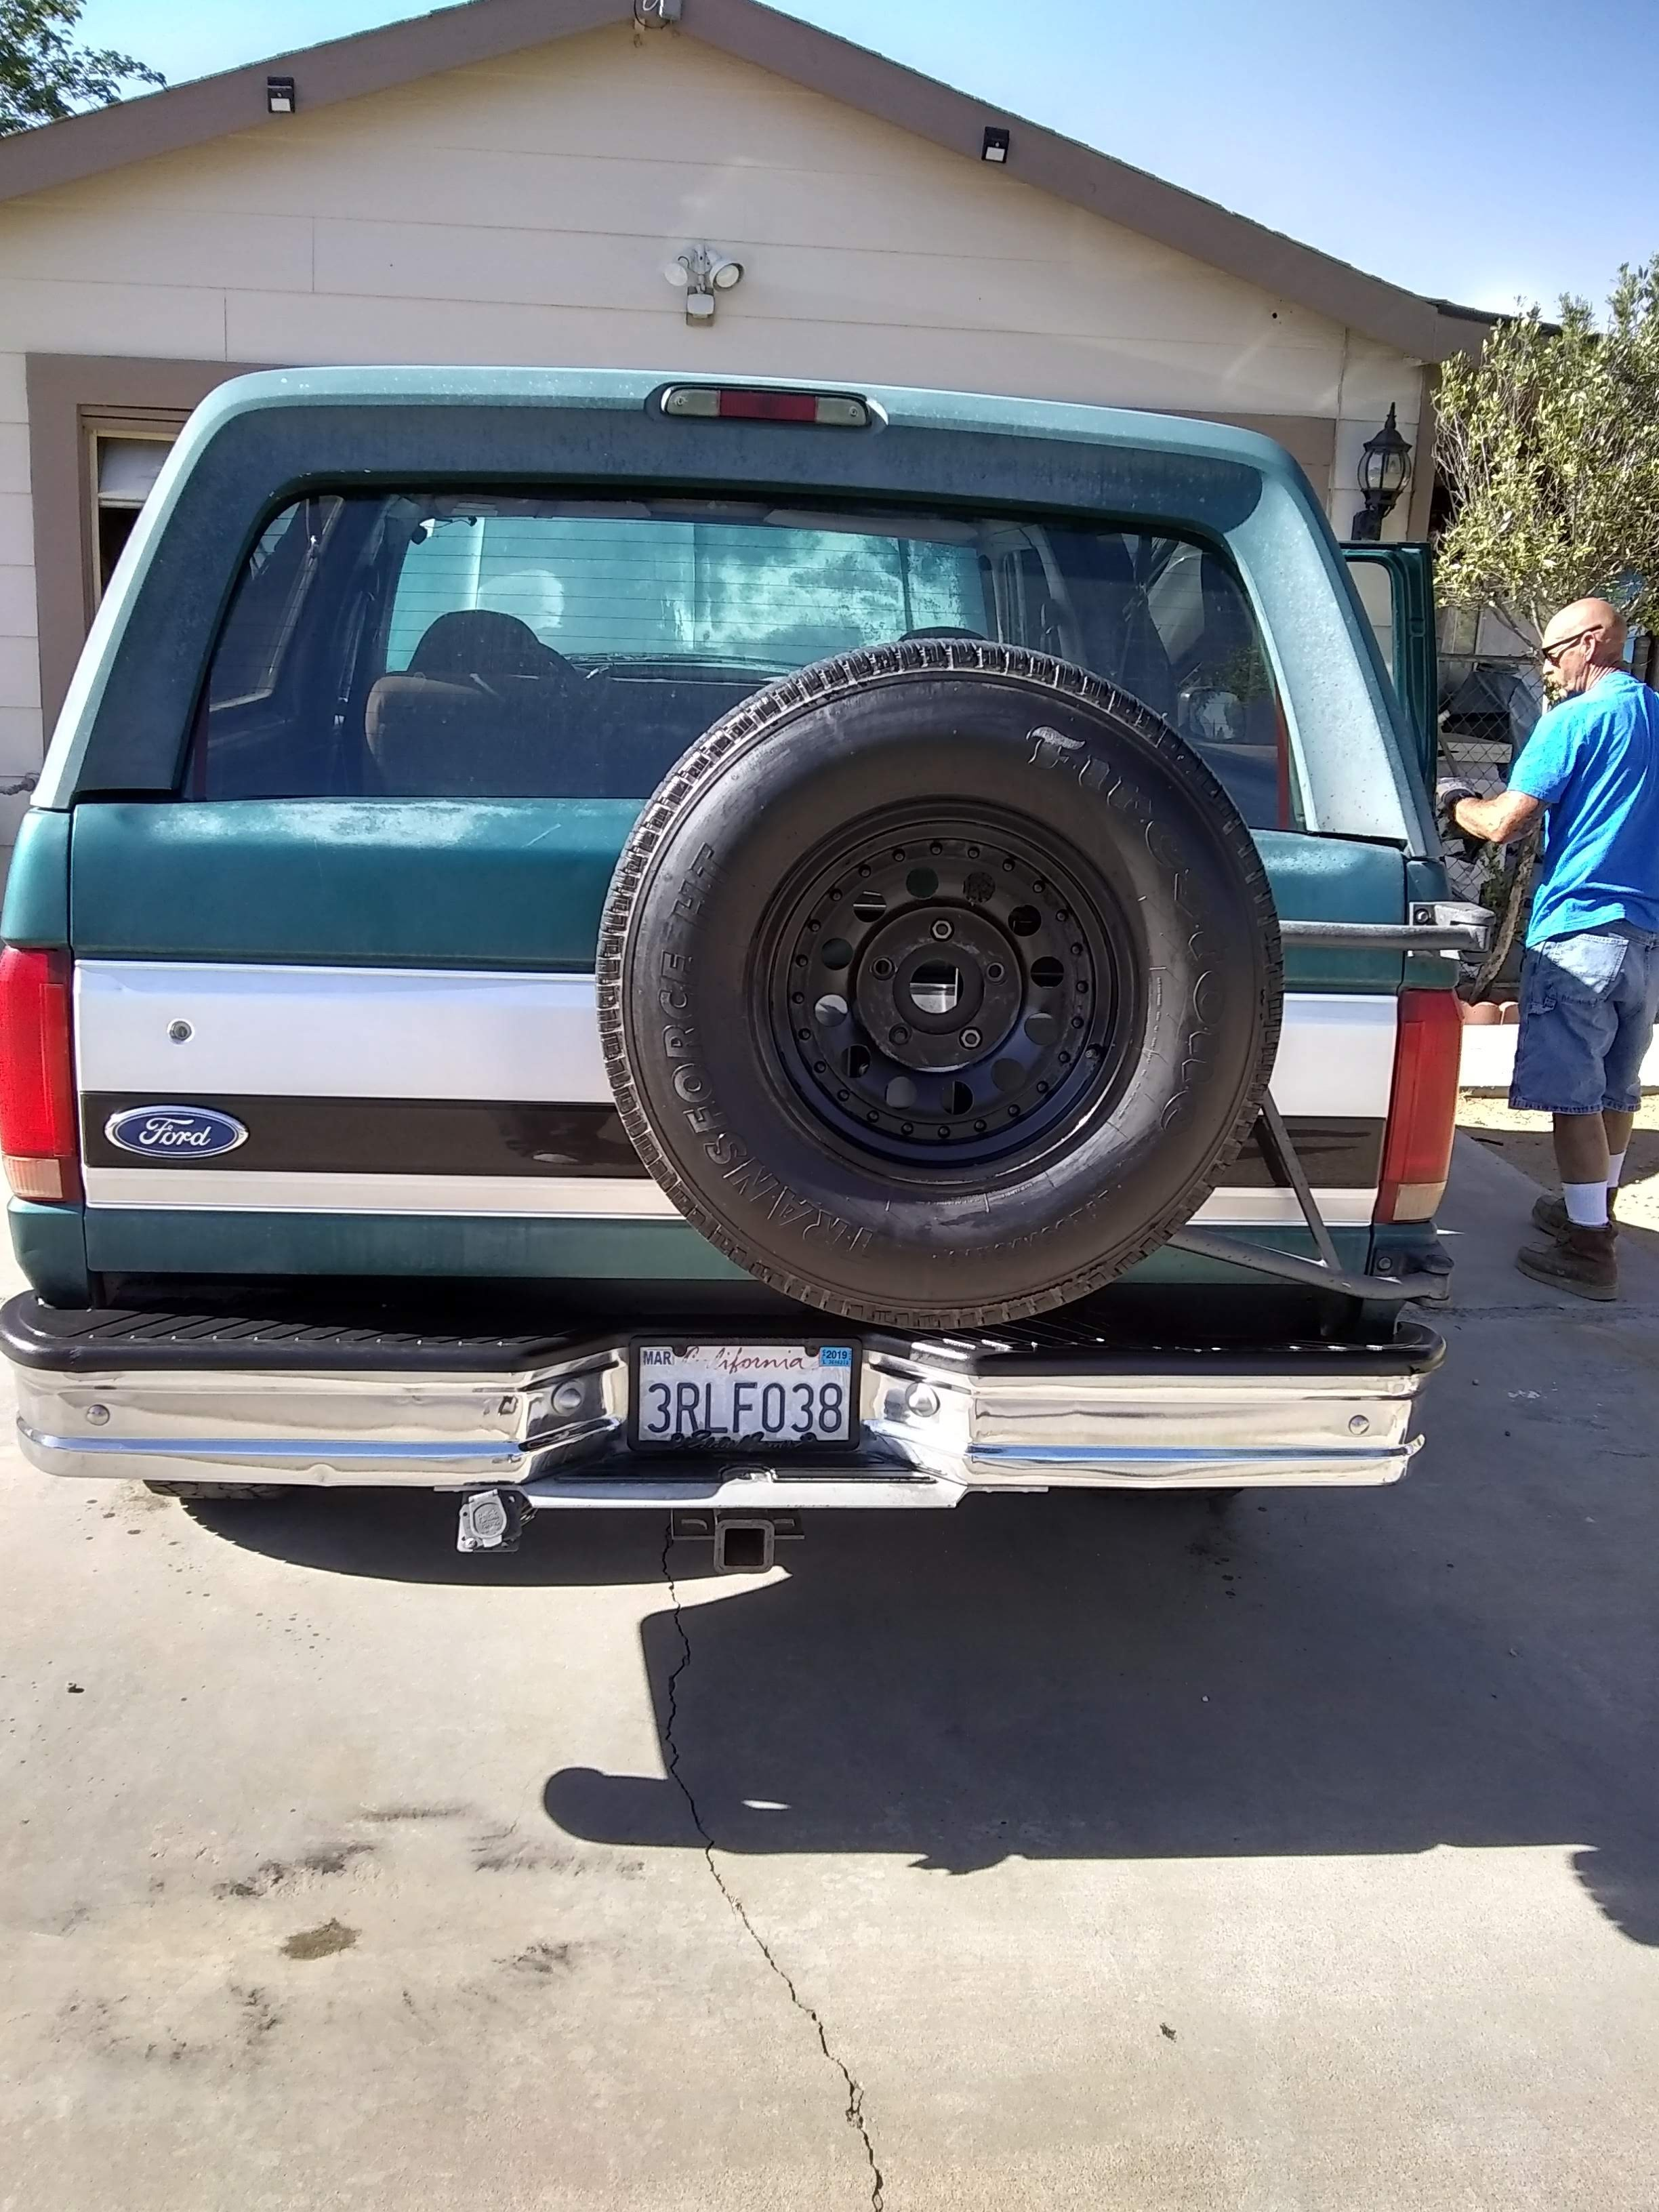 Highly sought by collectors. 9y ford bronco 4x4 eddie baur edition. Re